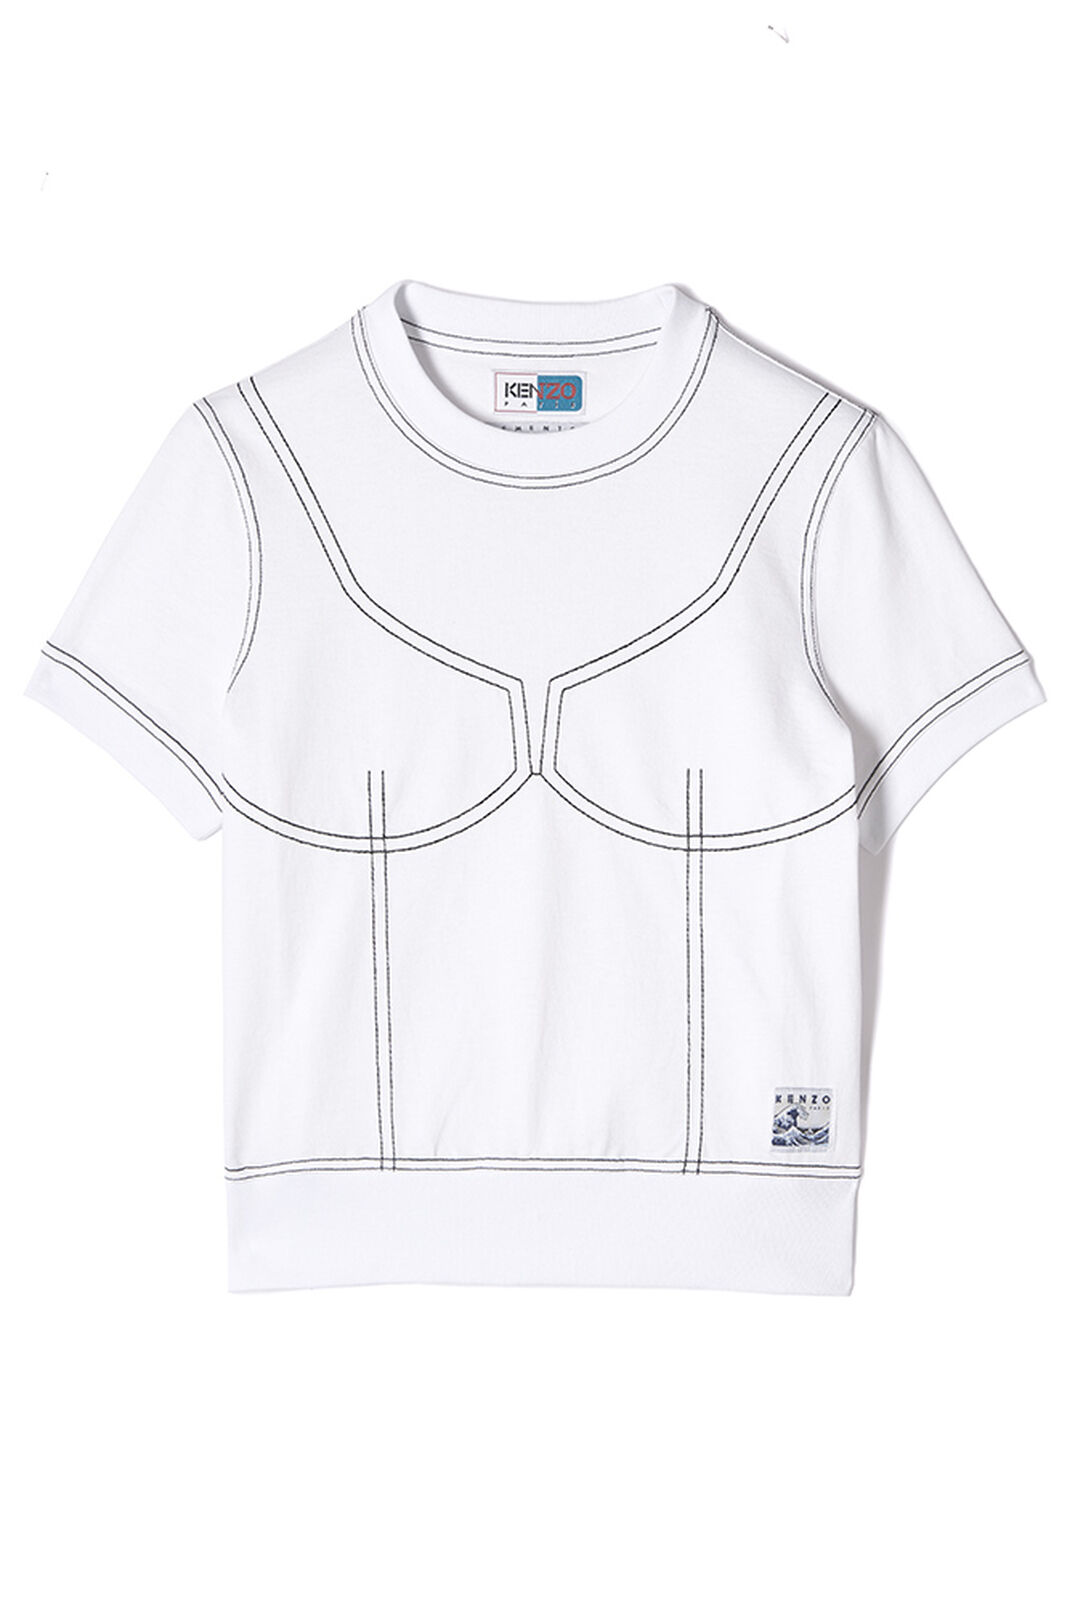 WHITE Illusion t-shirt for women KENZO